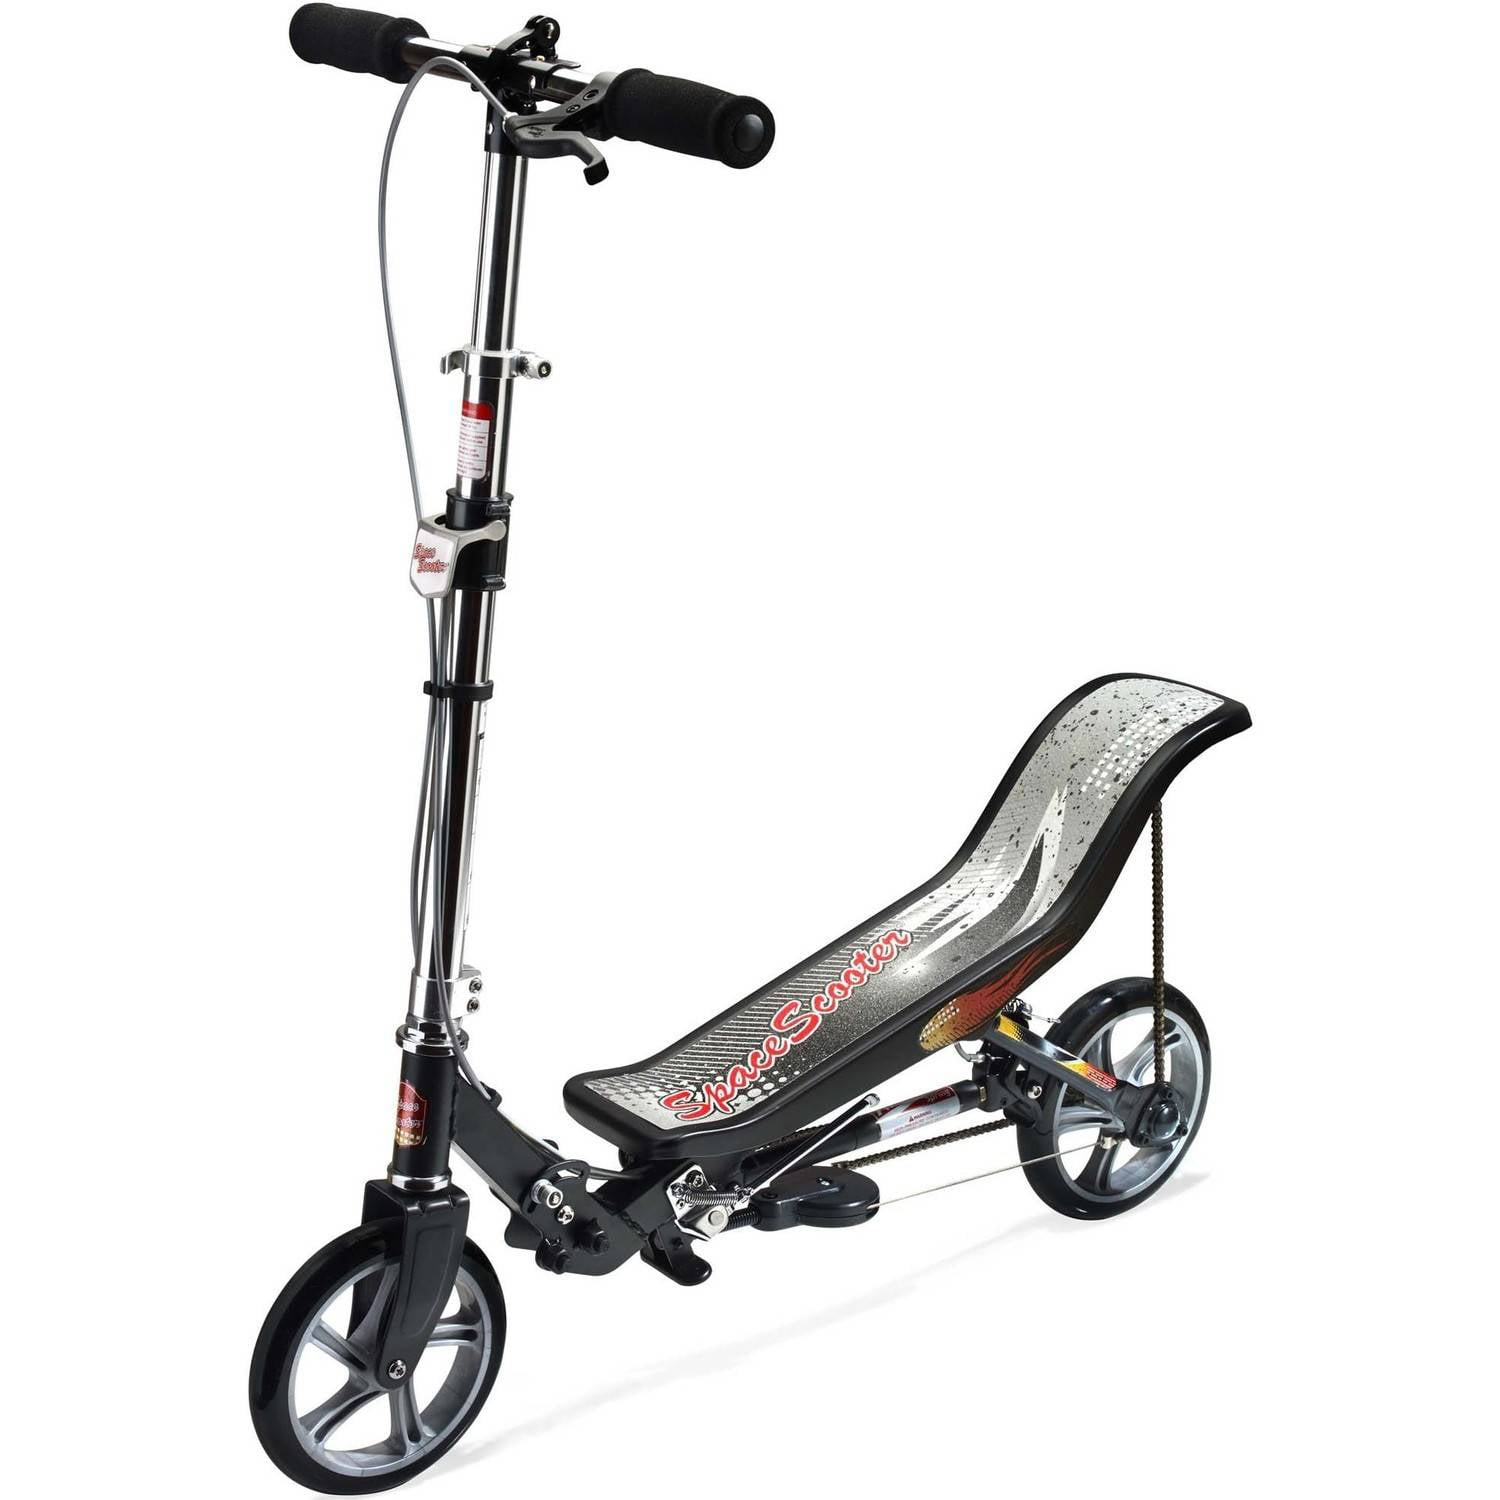 Space Scooter X580, Regular, Black by Space Scooter